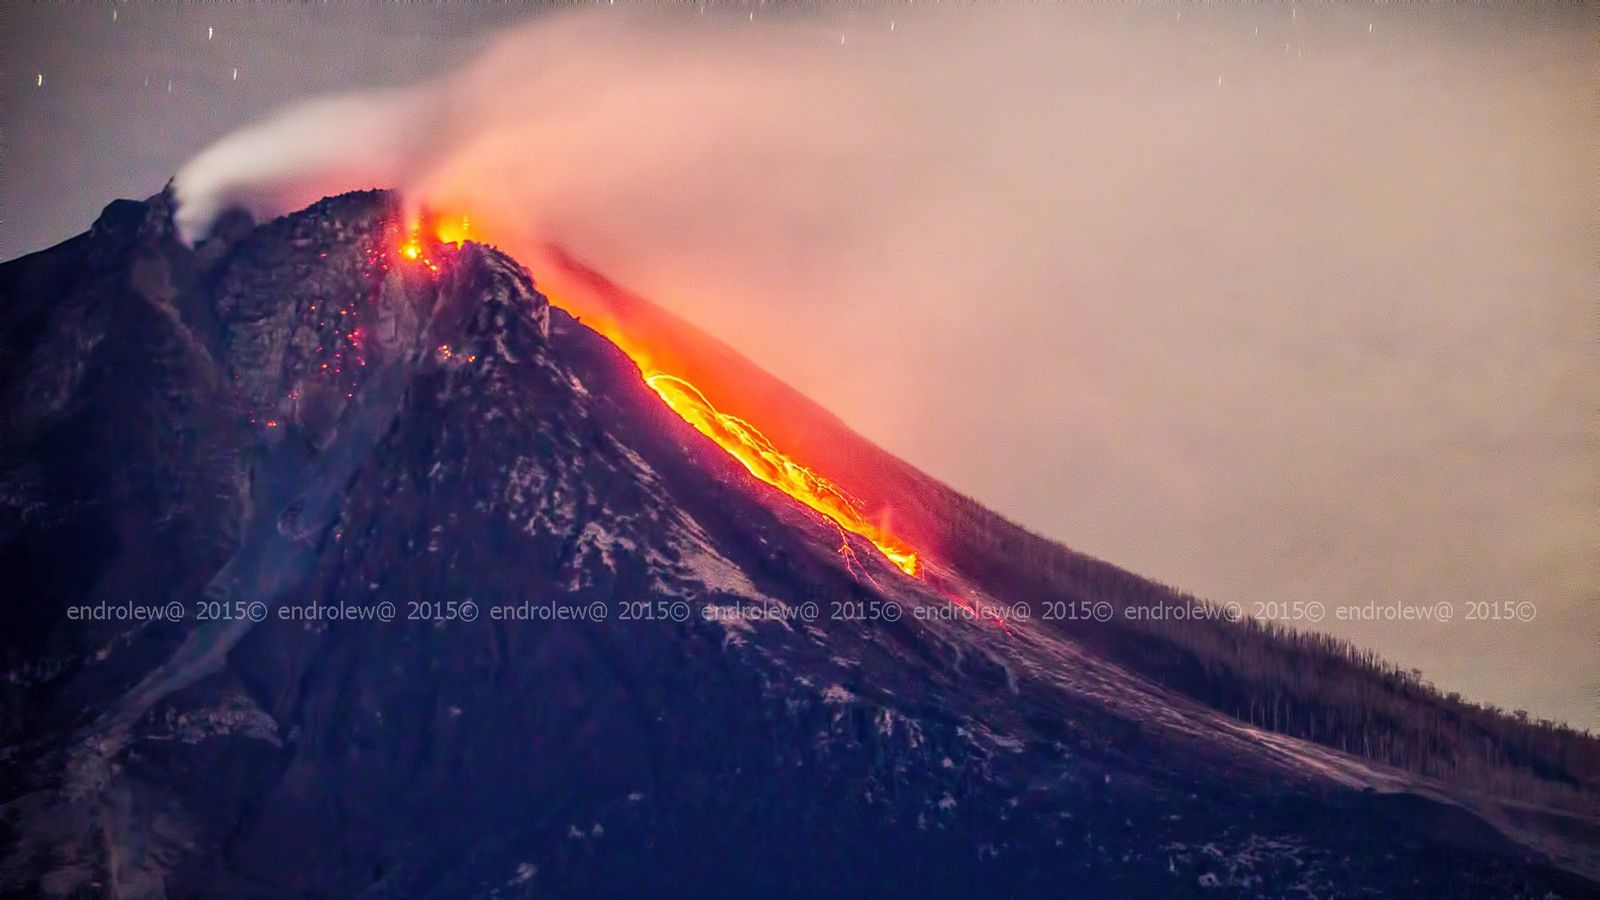 Sinabung 06.18.2015 / 1:05 a.m. - dome-lobe always in place and avalanche of blocks- photo endrolew@